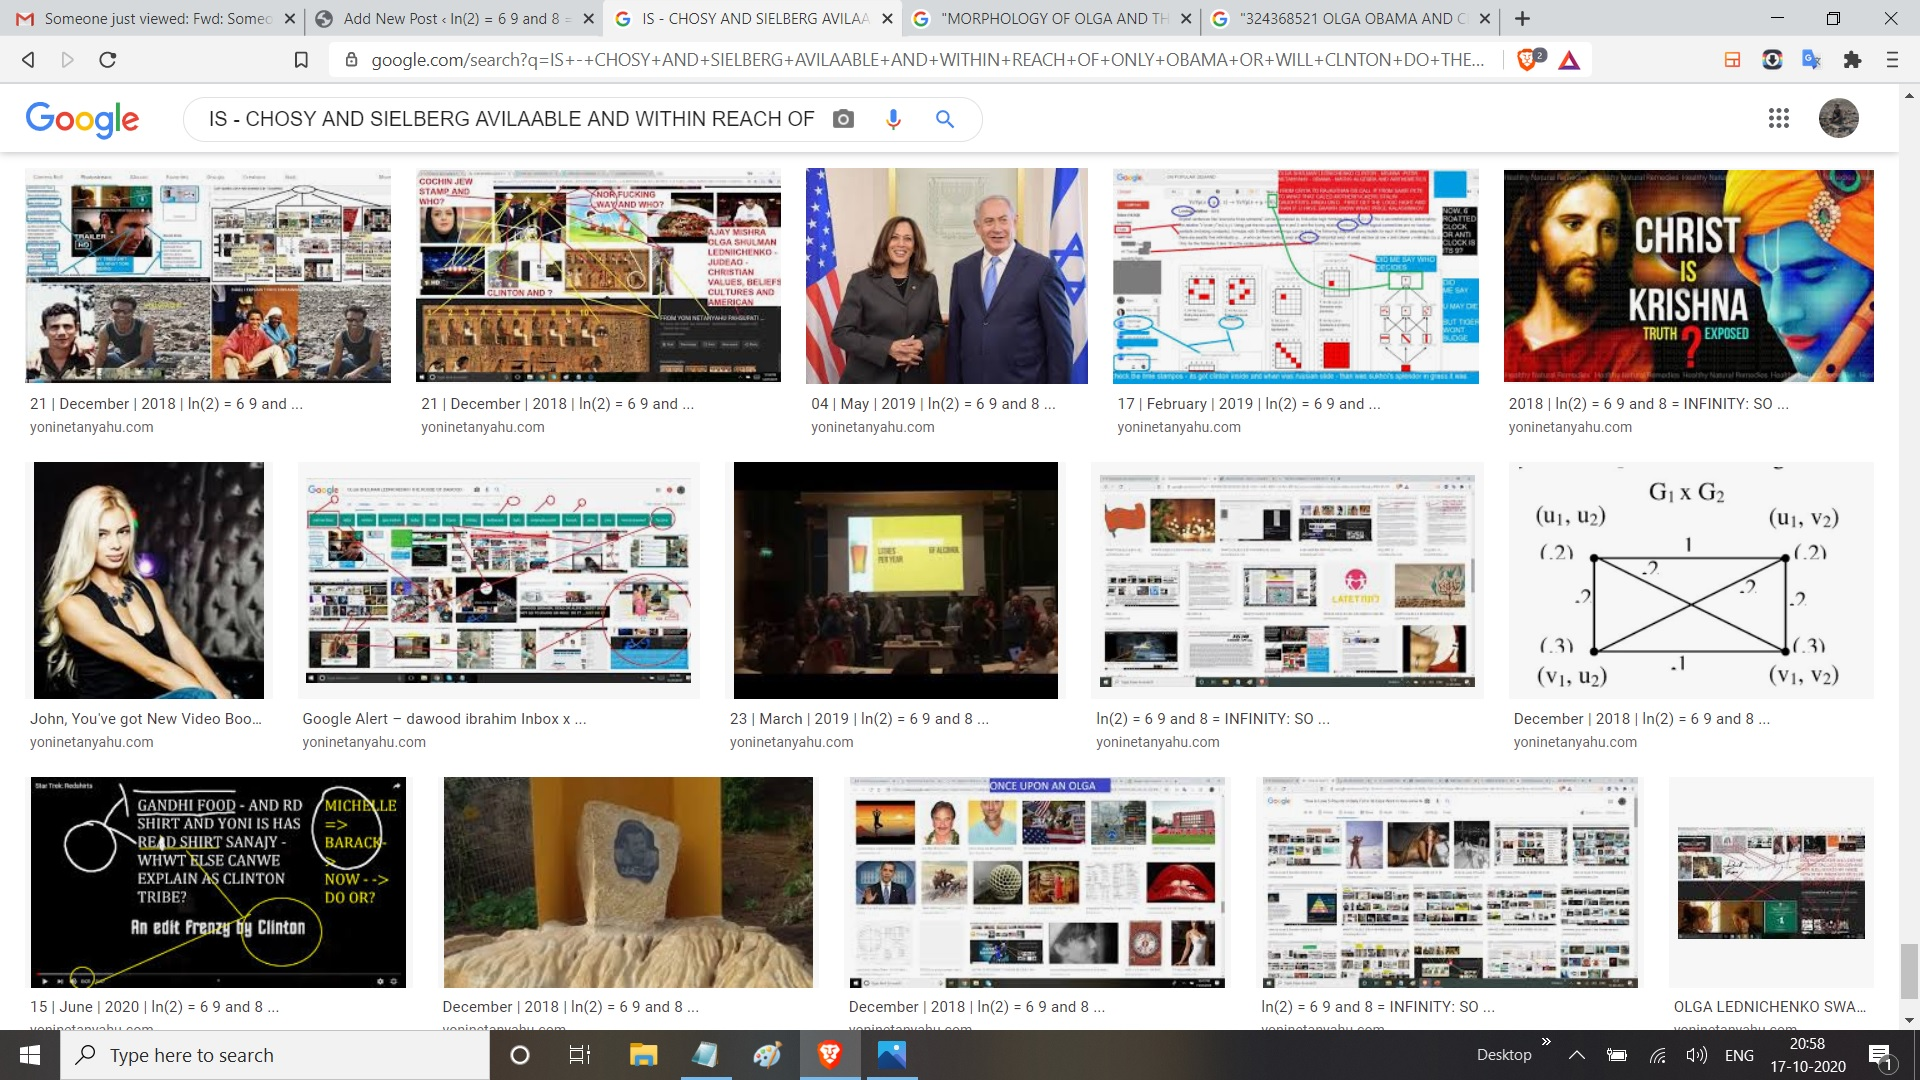 IS - CHOSY AND SIELBERG AVILAABLE AND WITHIN REACH OF ONLY OBAMA OR WILL CLNTON DO THE MAGIC THIS TIME FOR A CHANGE IT NEEDS CLINTON TO COORDINATE - AND ORGANZIE COMMUNITY OF THE WHO